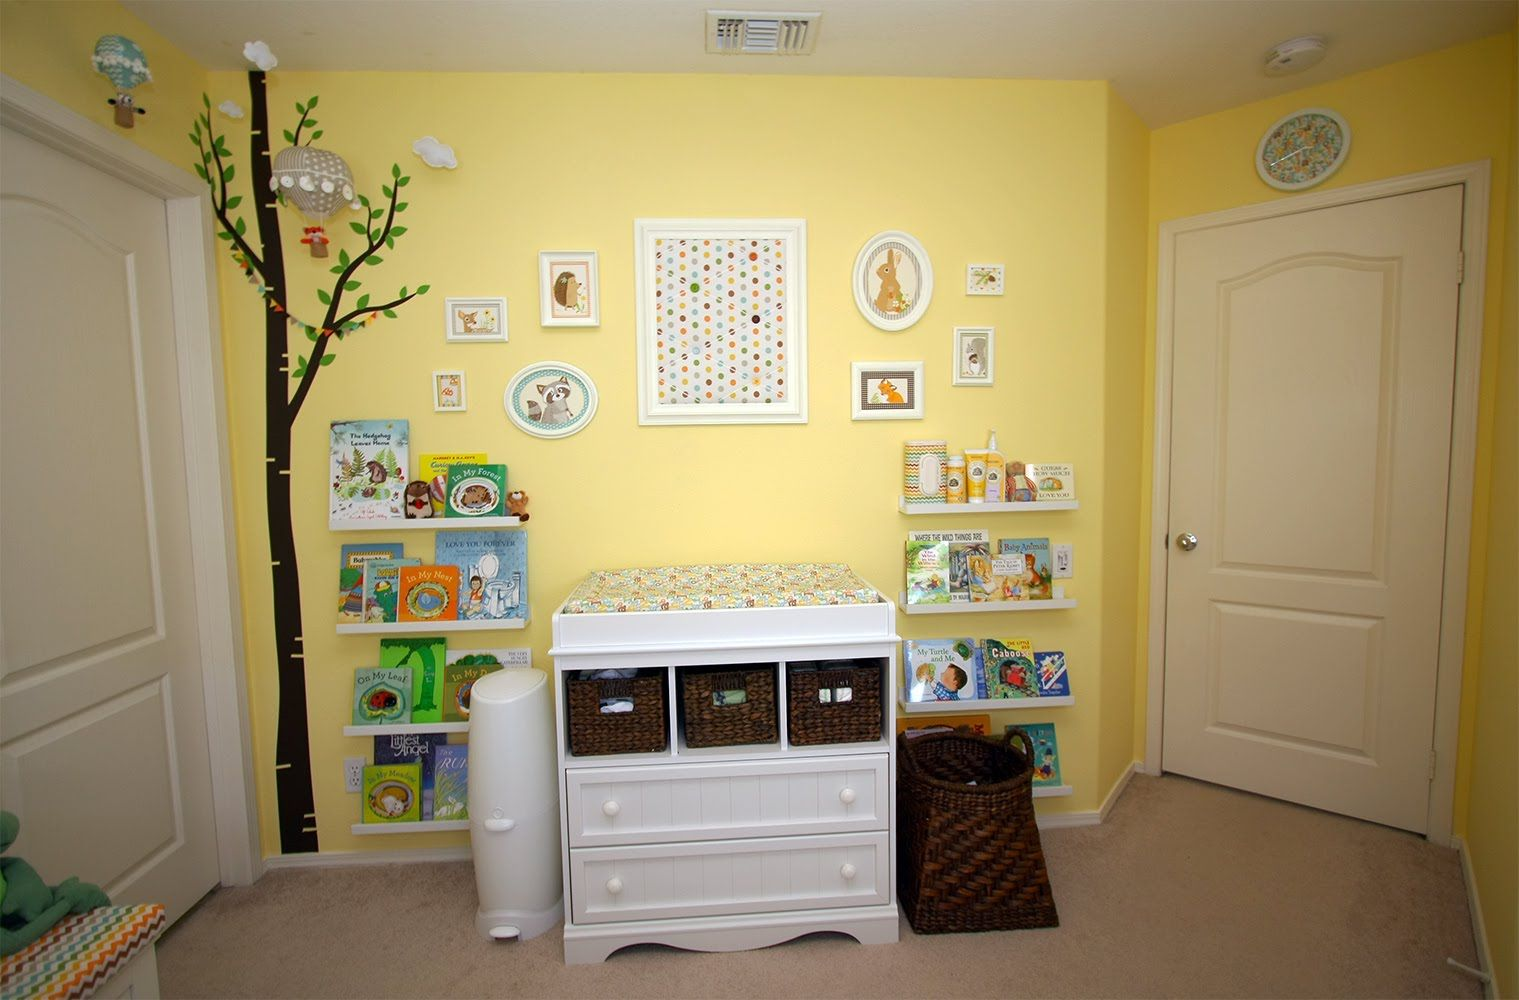 99+ Neutral Baby Room Ideas - Ideas for Basement Bedrooms Check more ...